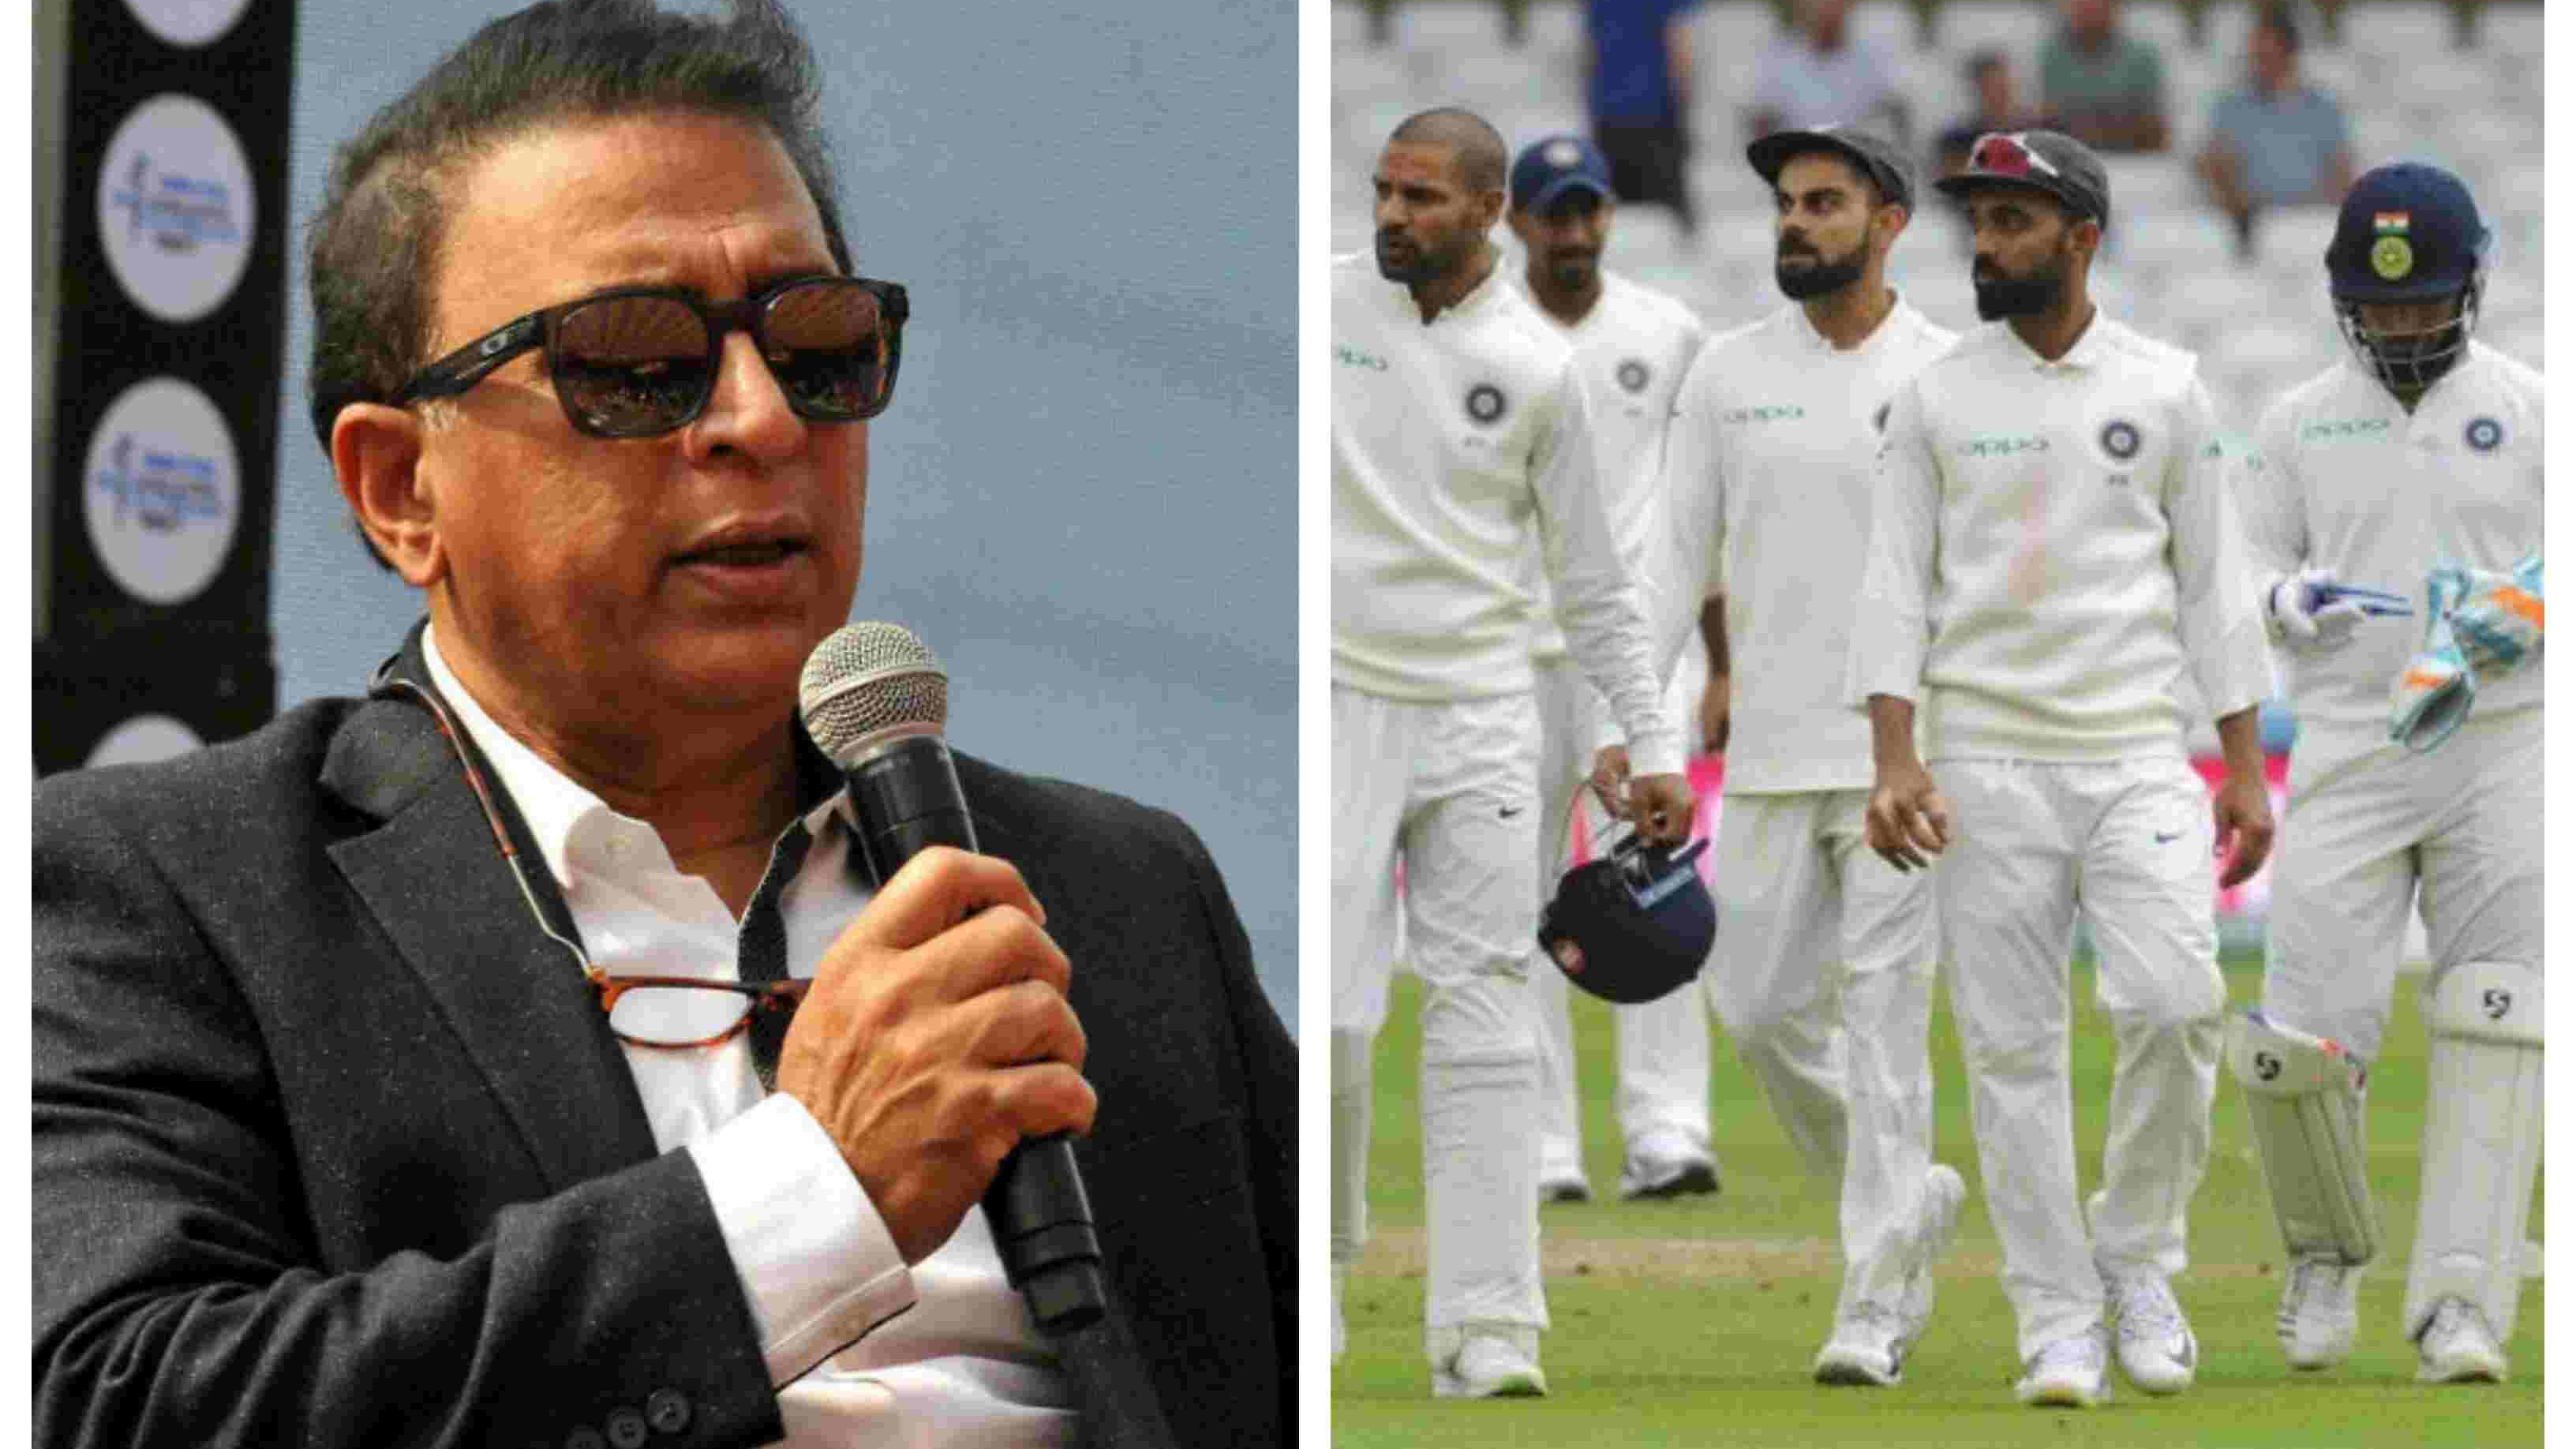 ENG v IND 2018: Team India missed a chance to create history in England, feels Sunil Gavaskar